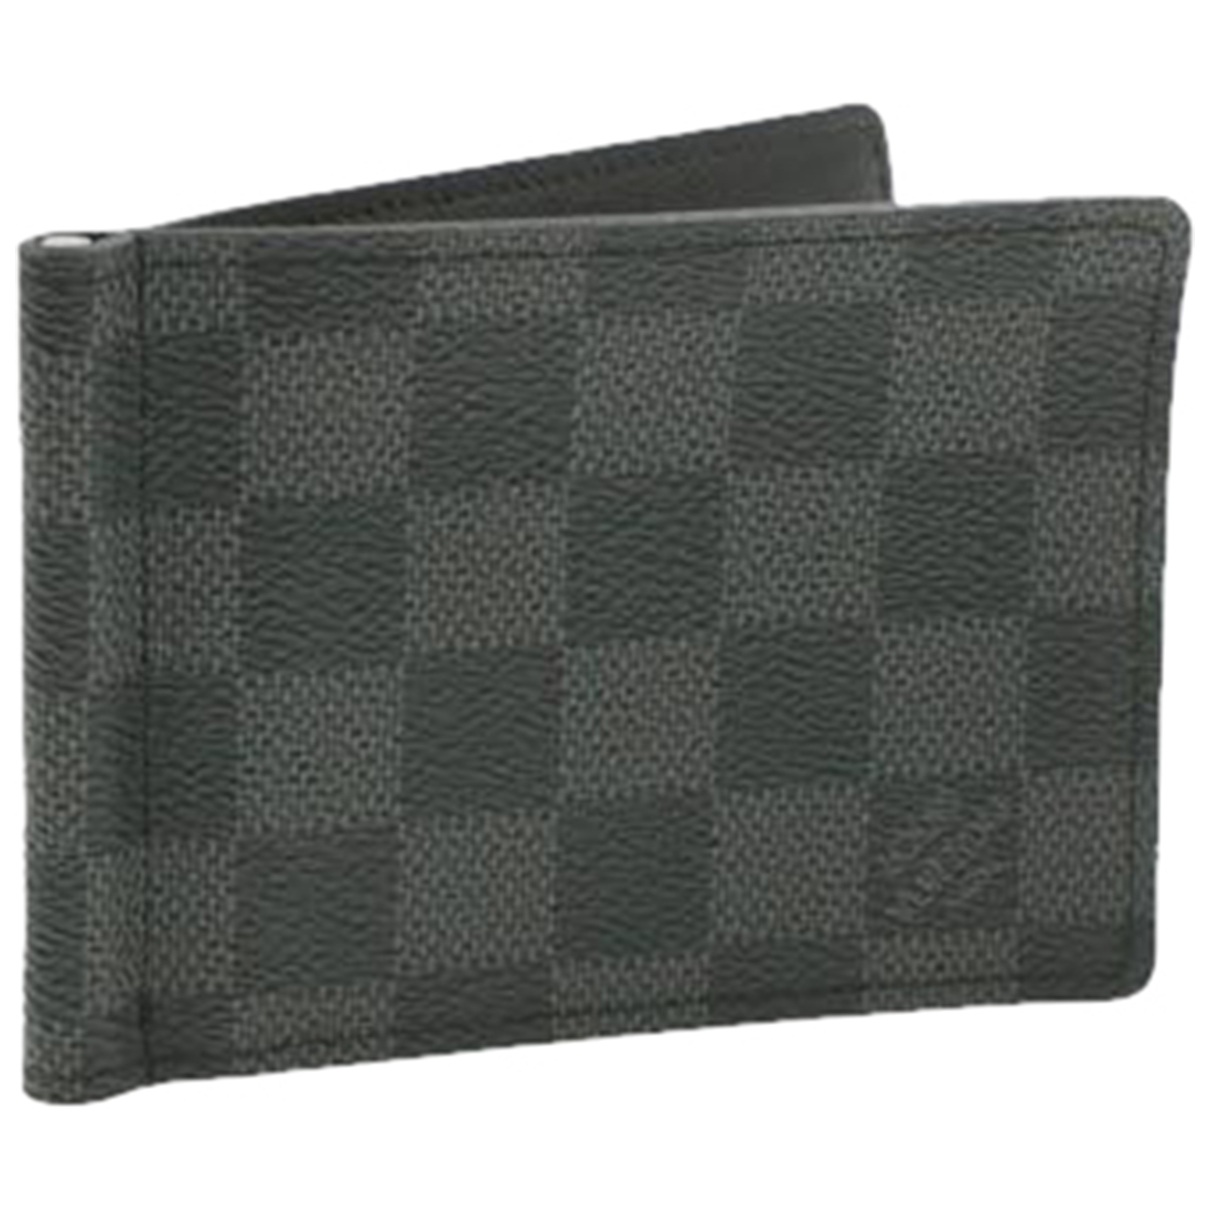 Louis Vuitton \N Black scarf for Women \N